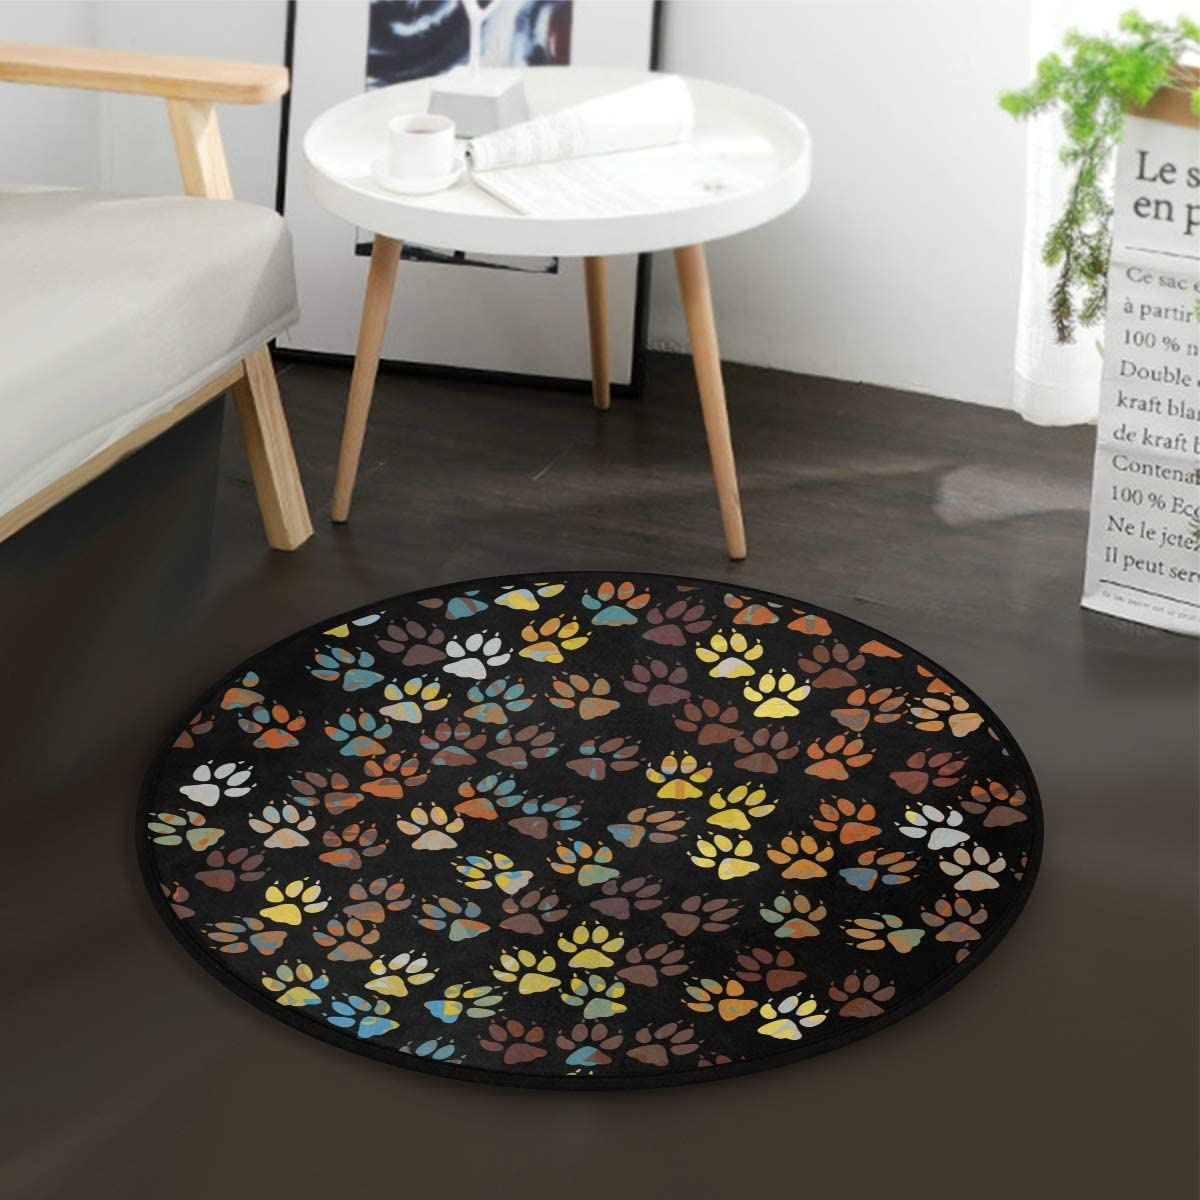 ZZAEO Round Area Rug Soft Comfort Floor Mat Carpet with Non Skid Backing for Home Bedroom Decor – 3 Feet Diameter 92 cm Dog Paw